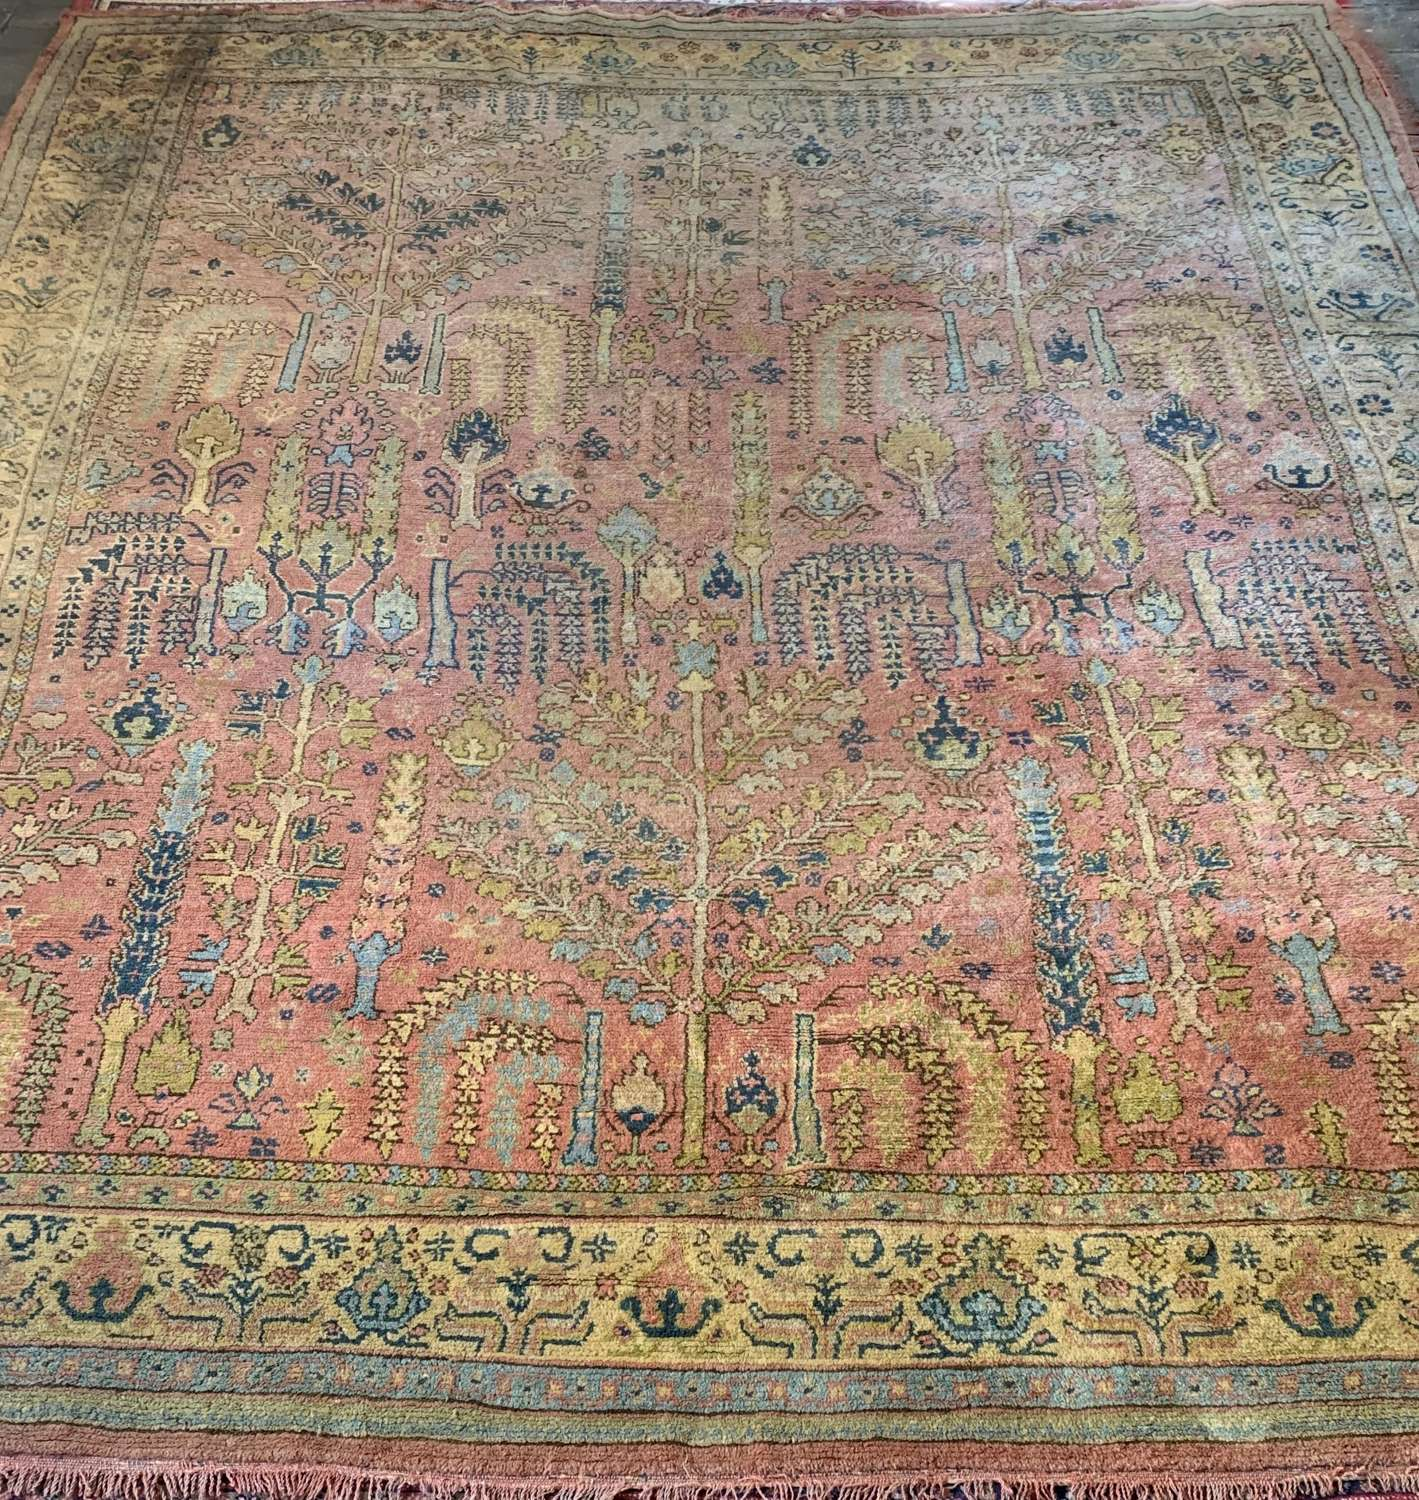 Large Antique Ushak Willow Tree Carpet